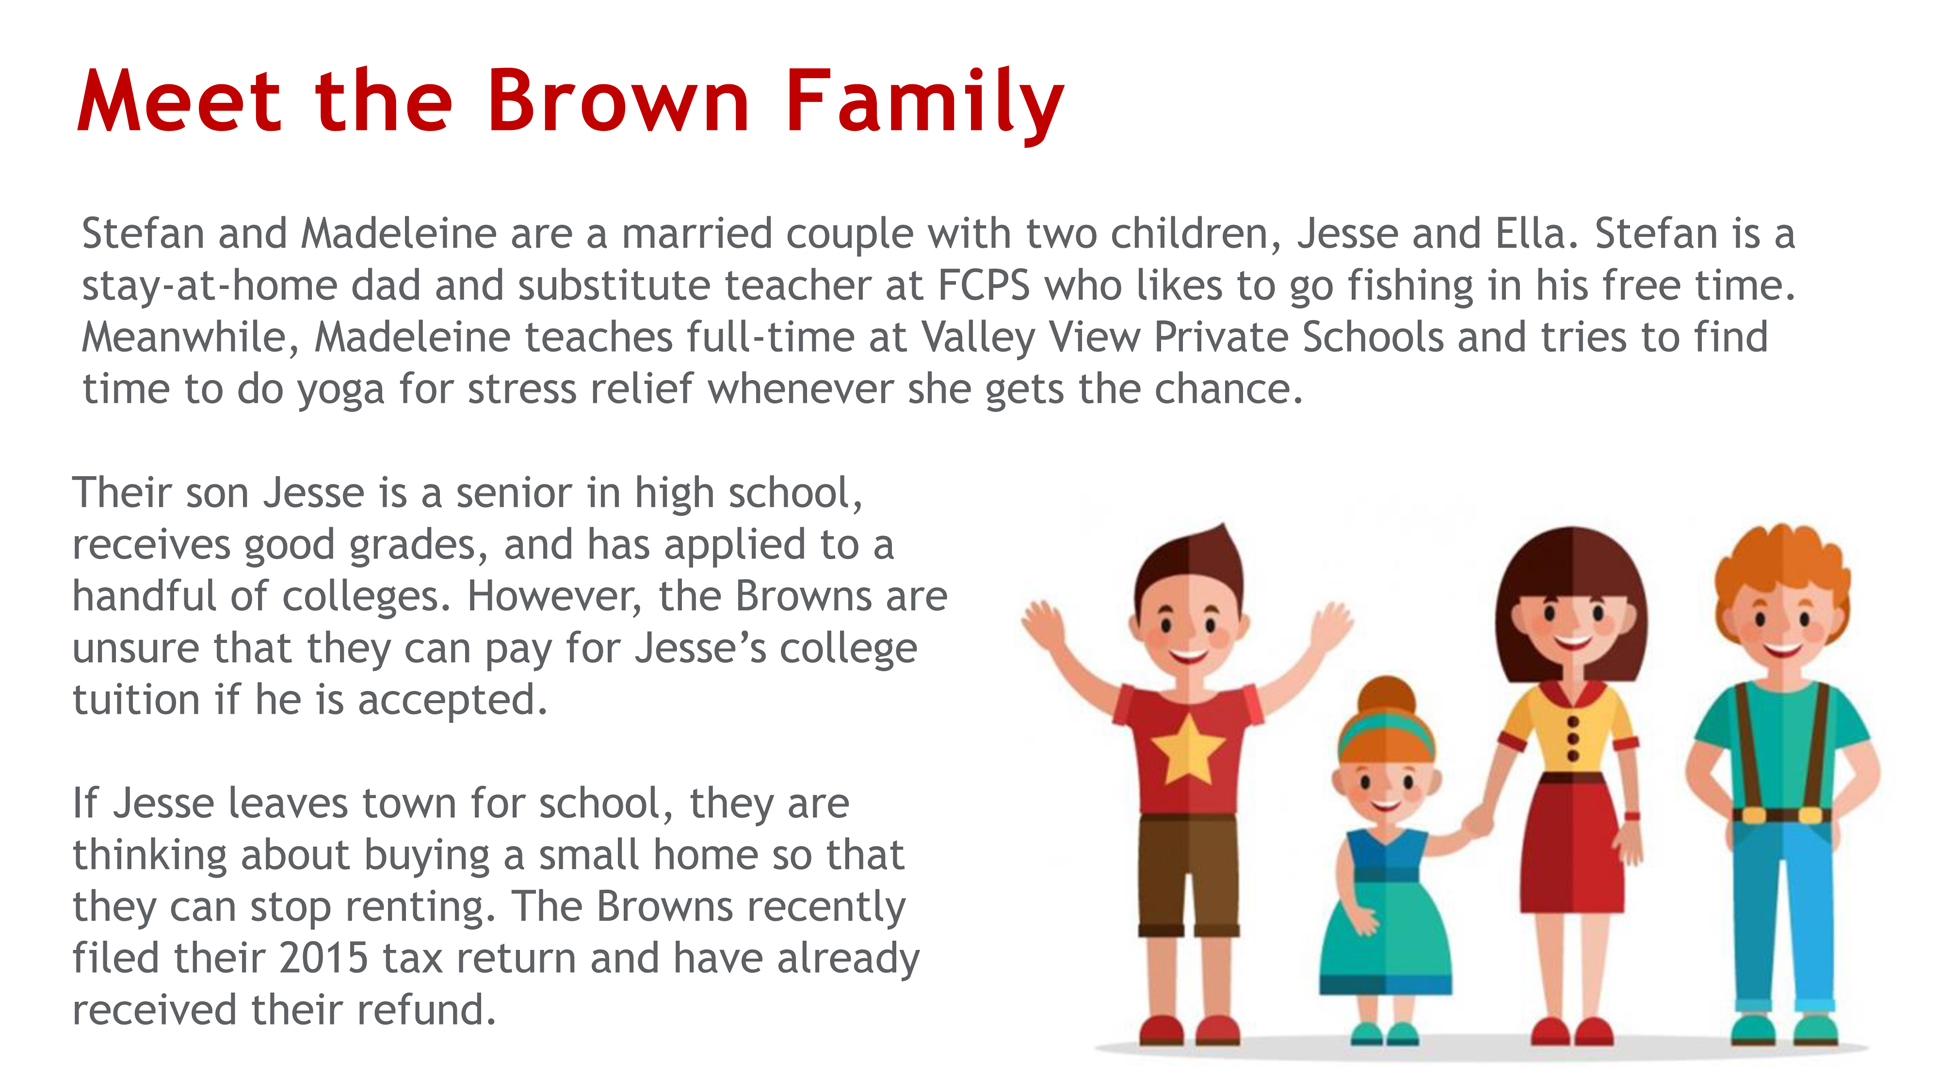 A page from a tax design challenge submission. This page introduces the Brown family who will be using the Taxez application. Stefan and Madeleine are a married couple with two children.